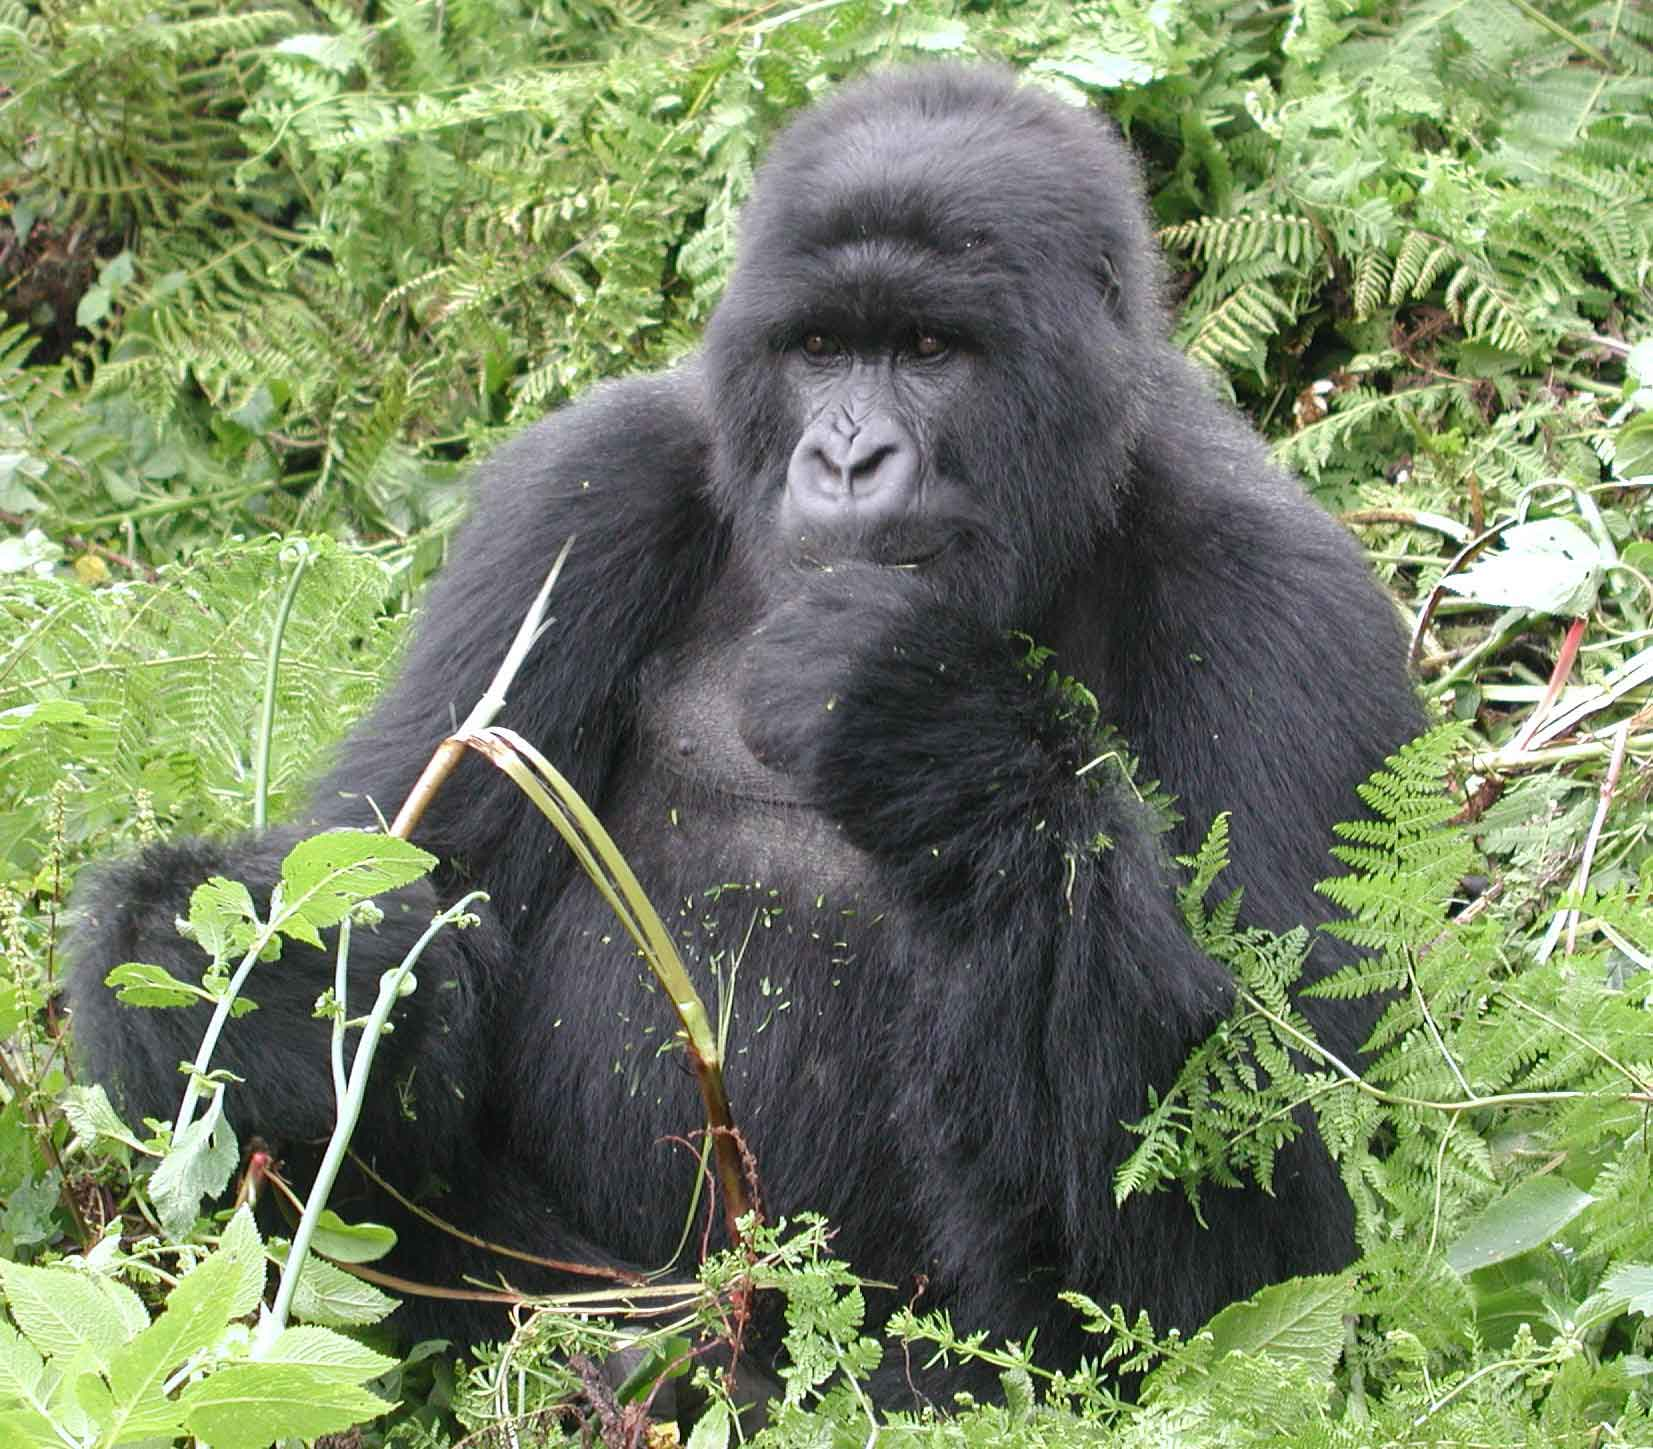 Gorilla trek safari at only $730 at www.gorillasandwildlifesafaris.com